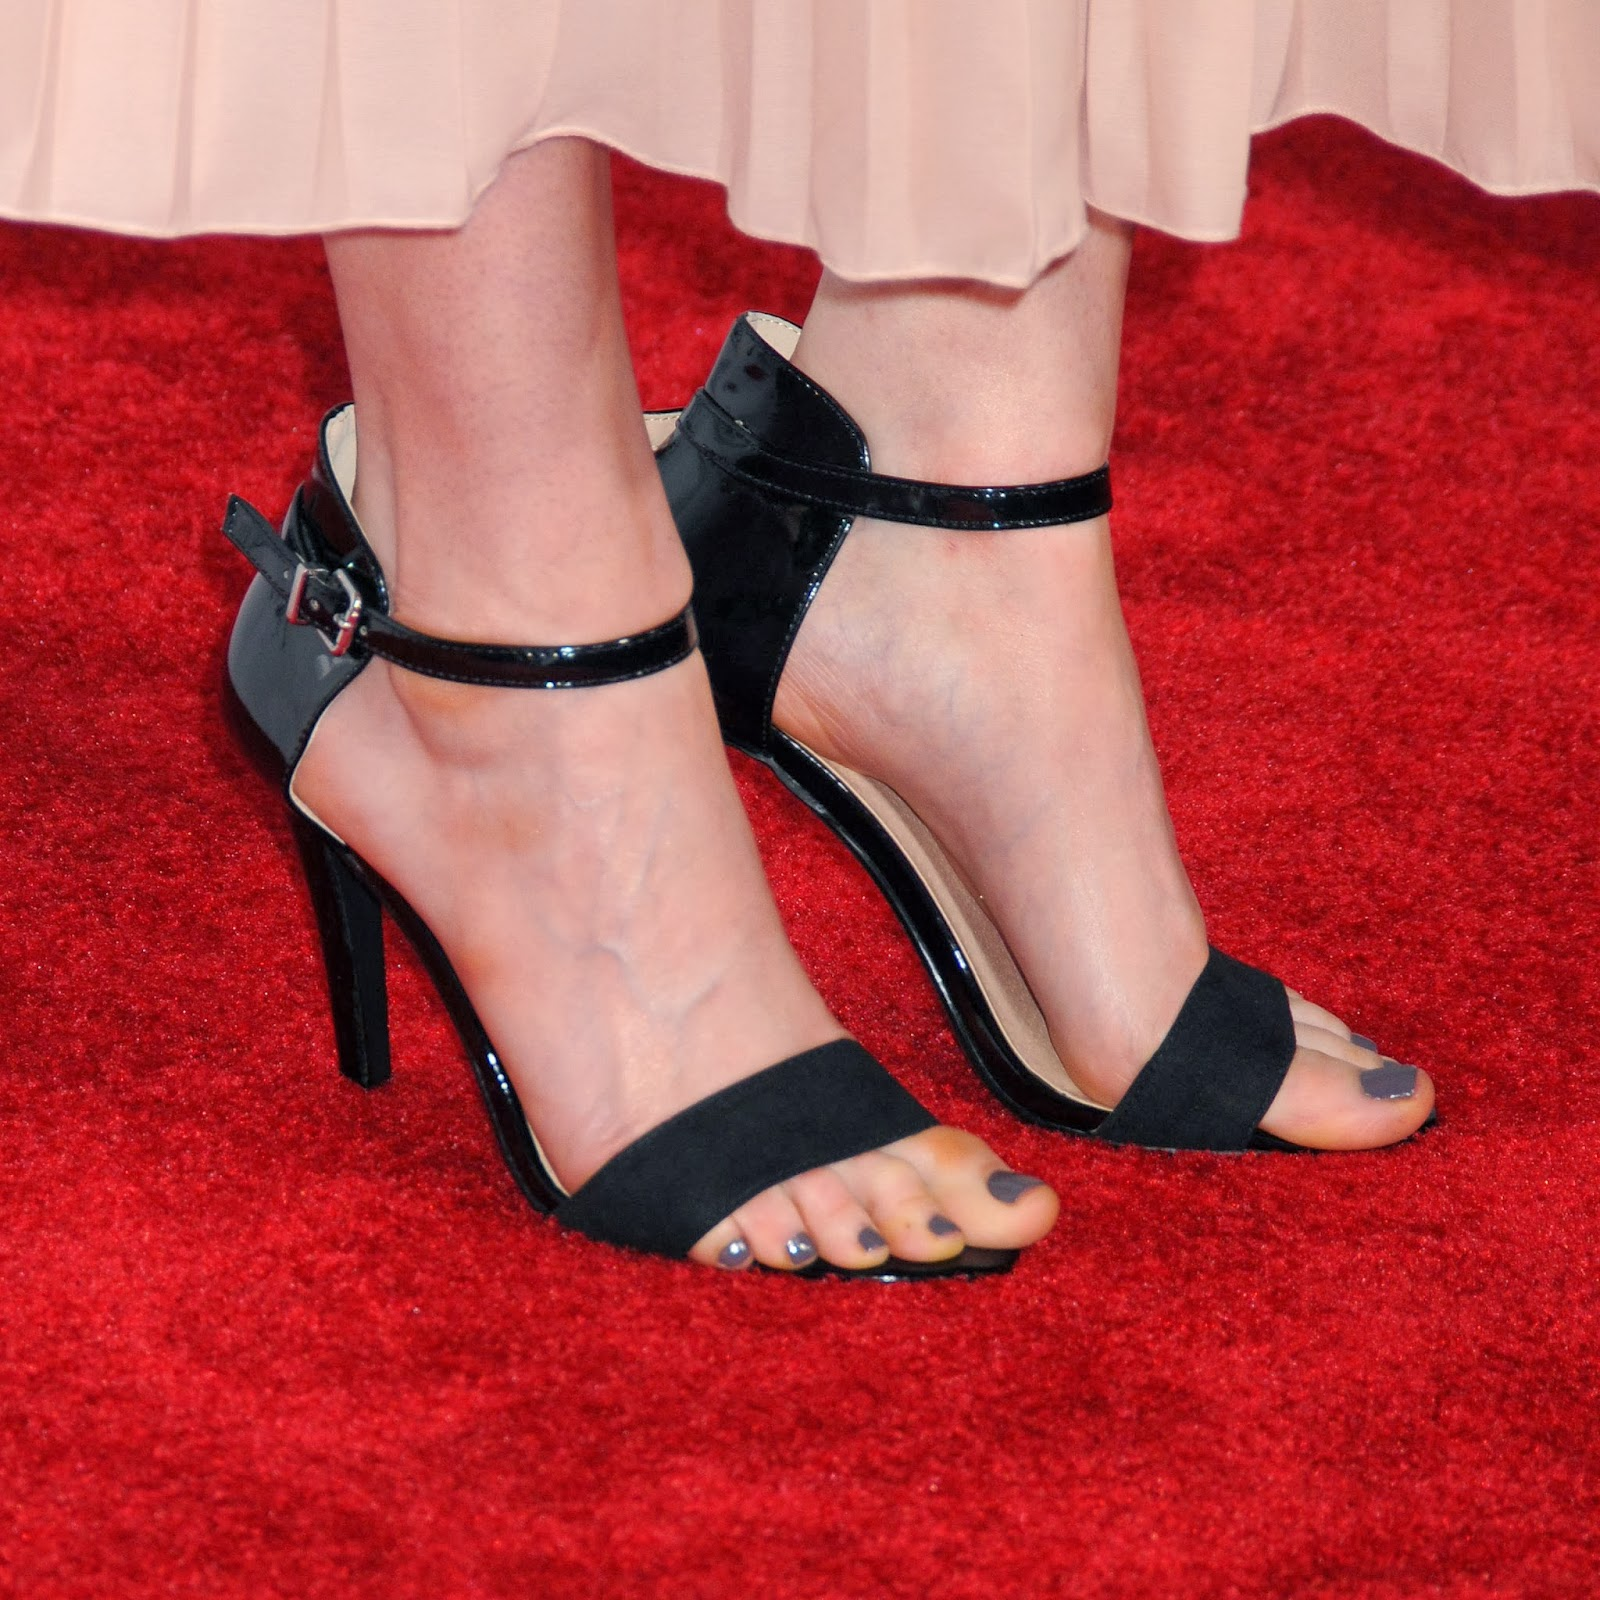 Are mistaken. Emily deschanel naked feet